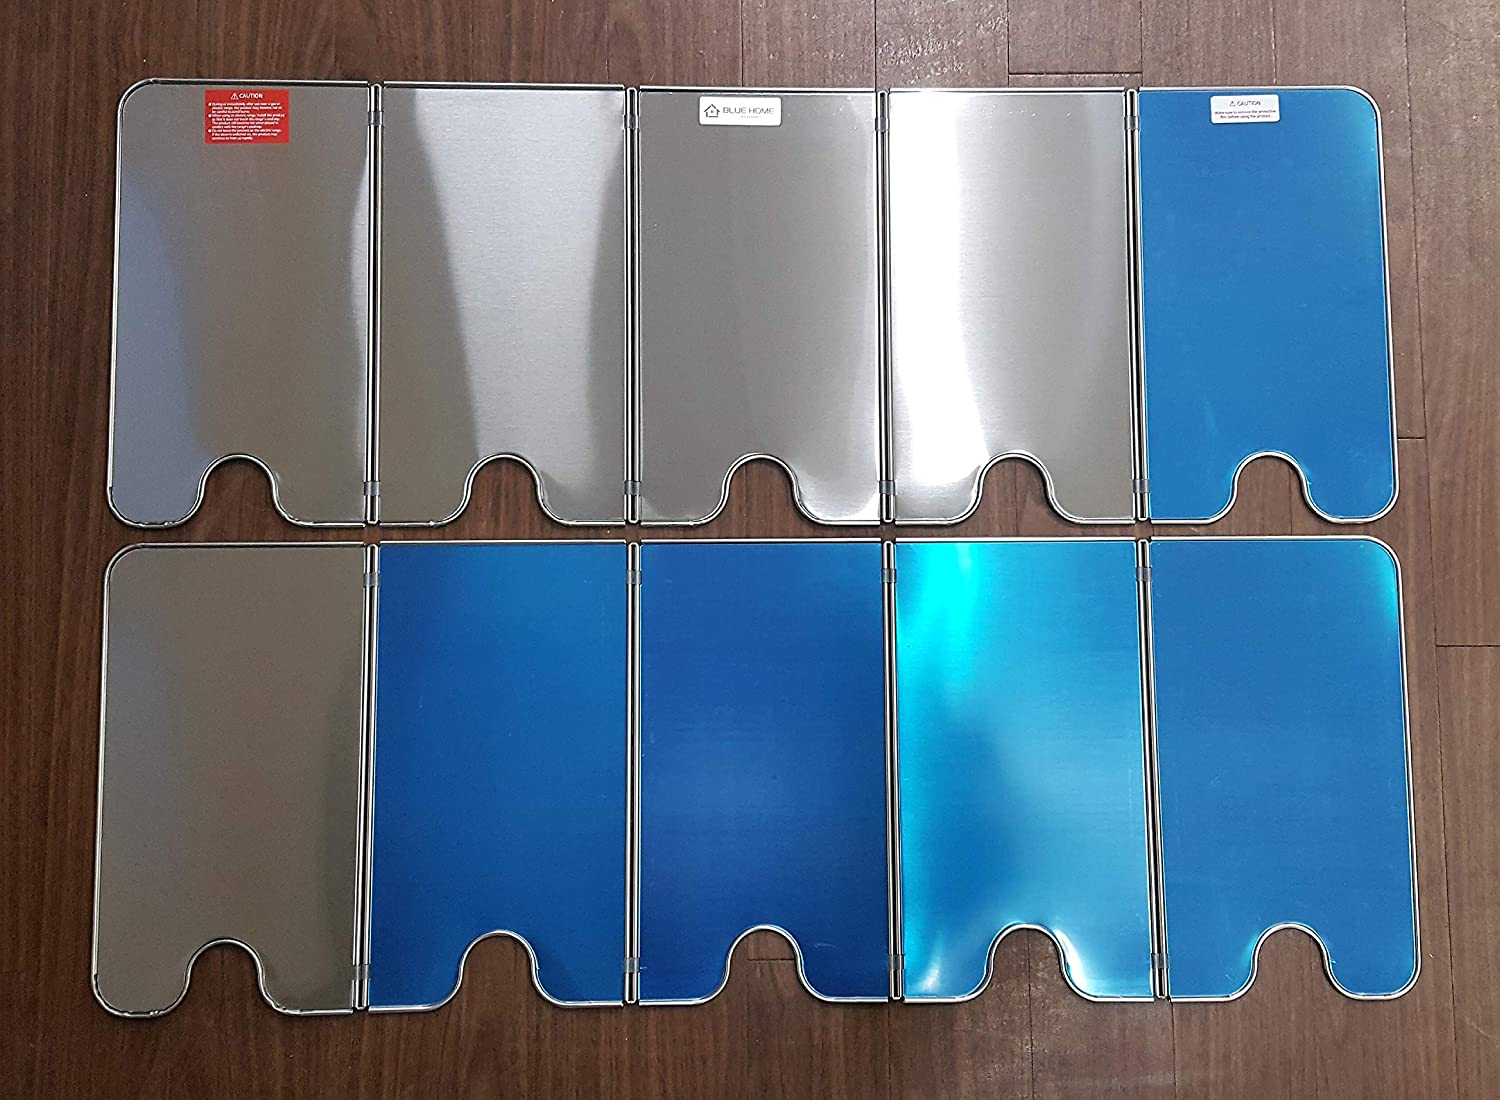 Stainless Steel 5 Sided Splatter Guard Compact Type Grease Splatter Screen Ltd BLUE HOME Splatter Guard for Cooking Unfold 36.6 in x 13 in Fold 7.28 in x 13 in x 1.06 in Mecha Solutech Co